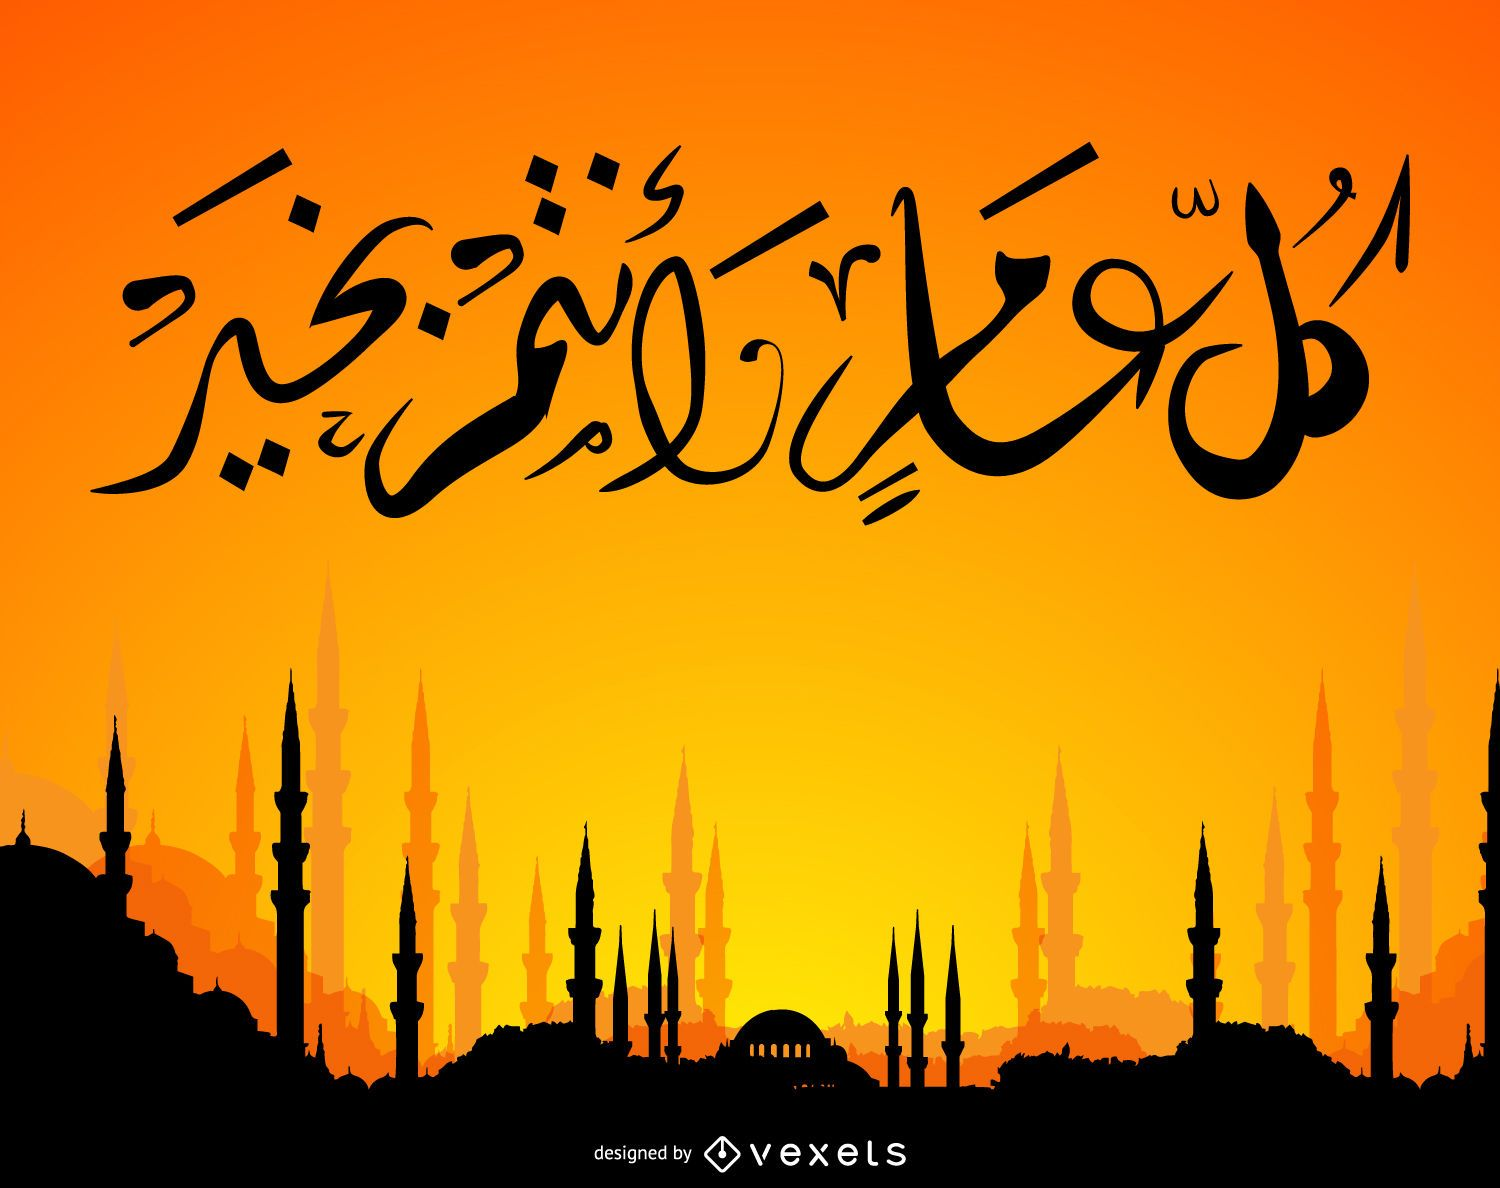 Mosque silhouettes with arabic calligraphy - Vector download